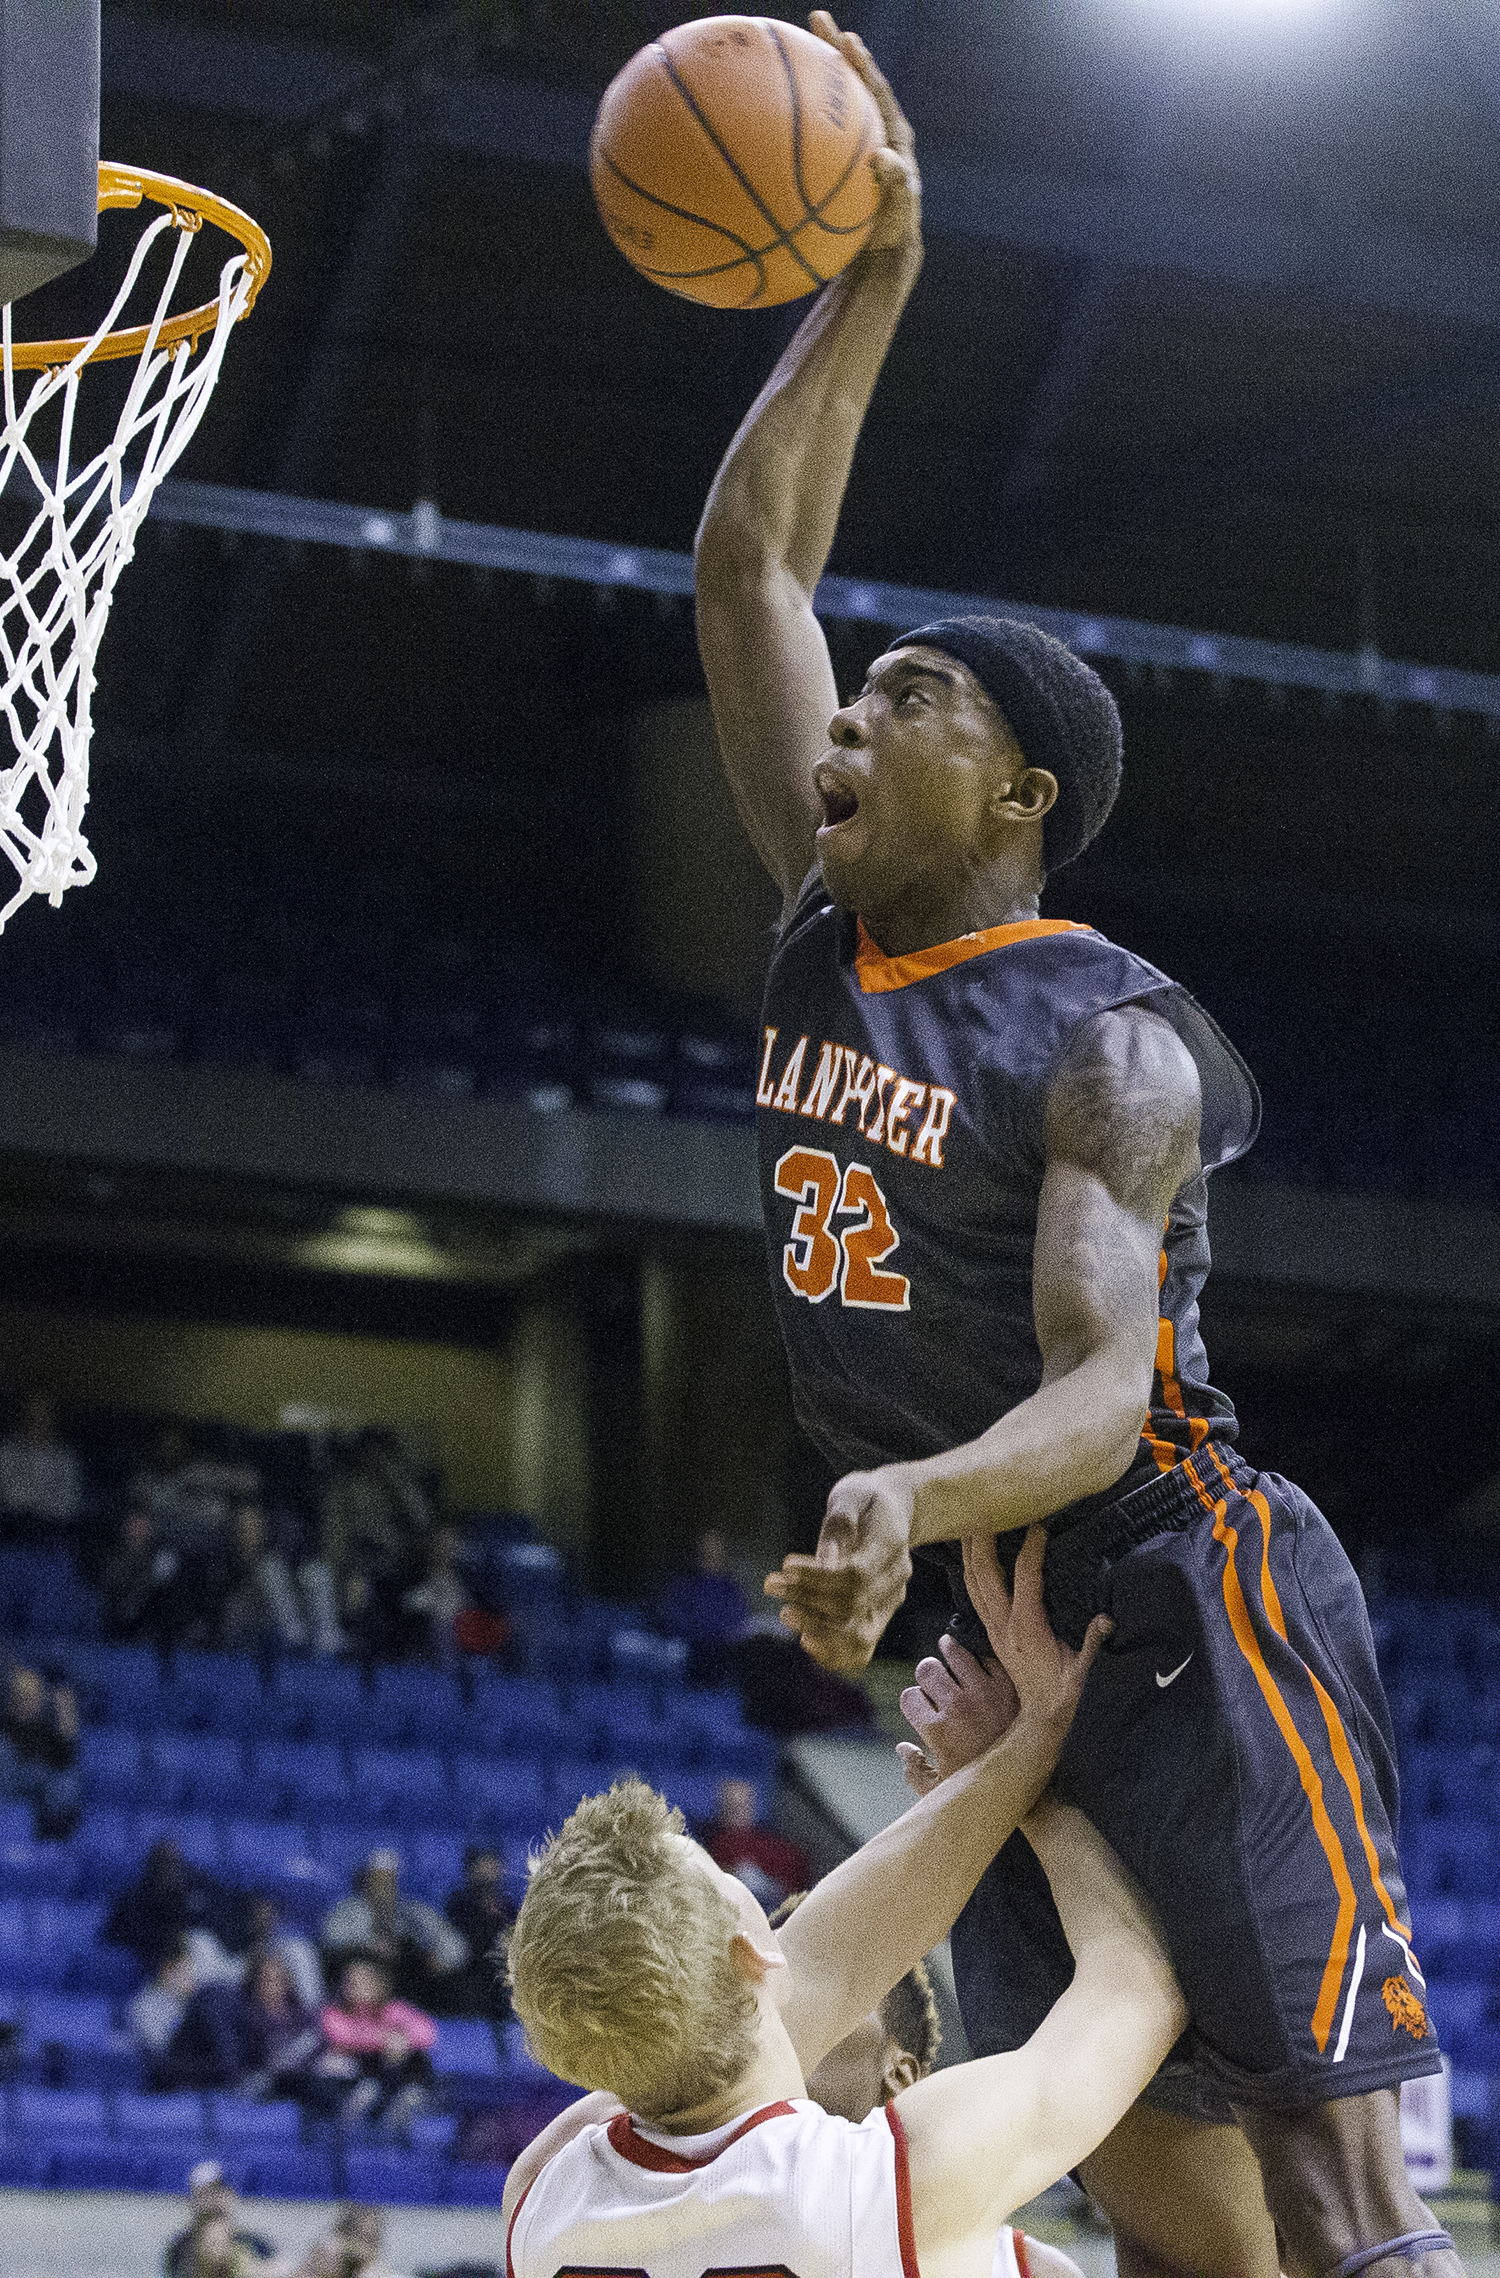 Lanphier's Karl Wright soars in for an attempted dunk against Springfield during the Boys City Tournament at the Bank of Springfield Center Thursday, Jan. 18, 2018. [Ted Schurter/The State Journal-Register]